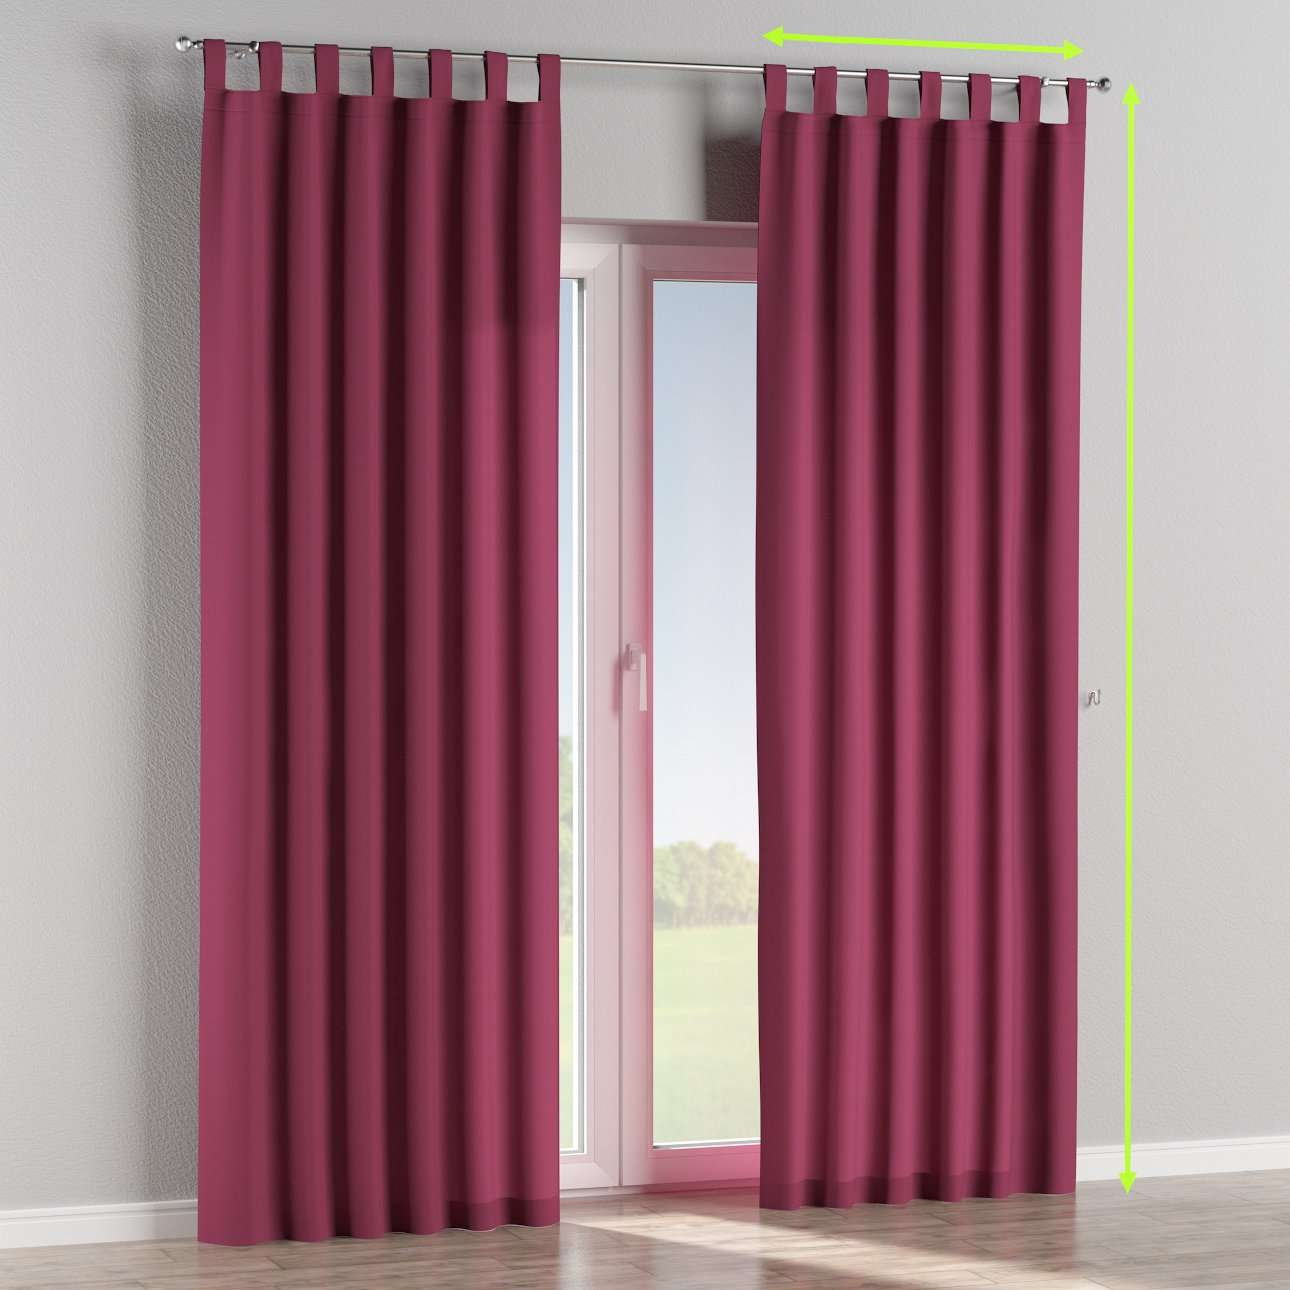 Tab top curtains in collection Cotton Panama, fabric: 702-32